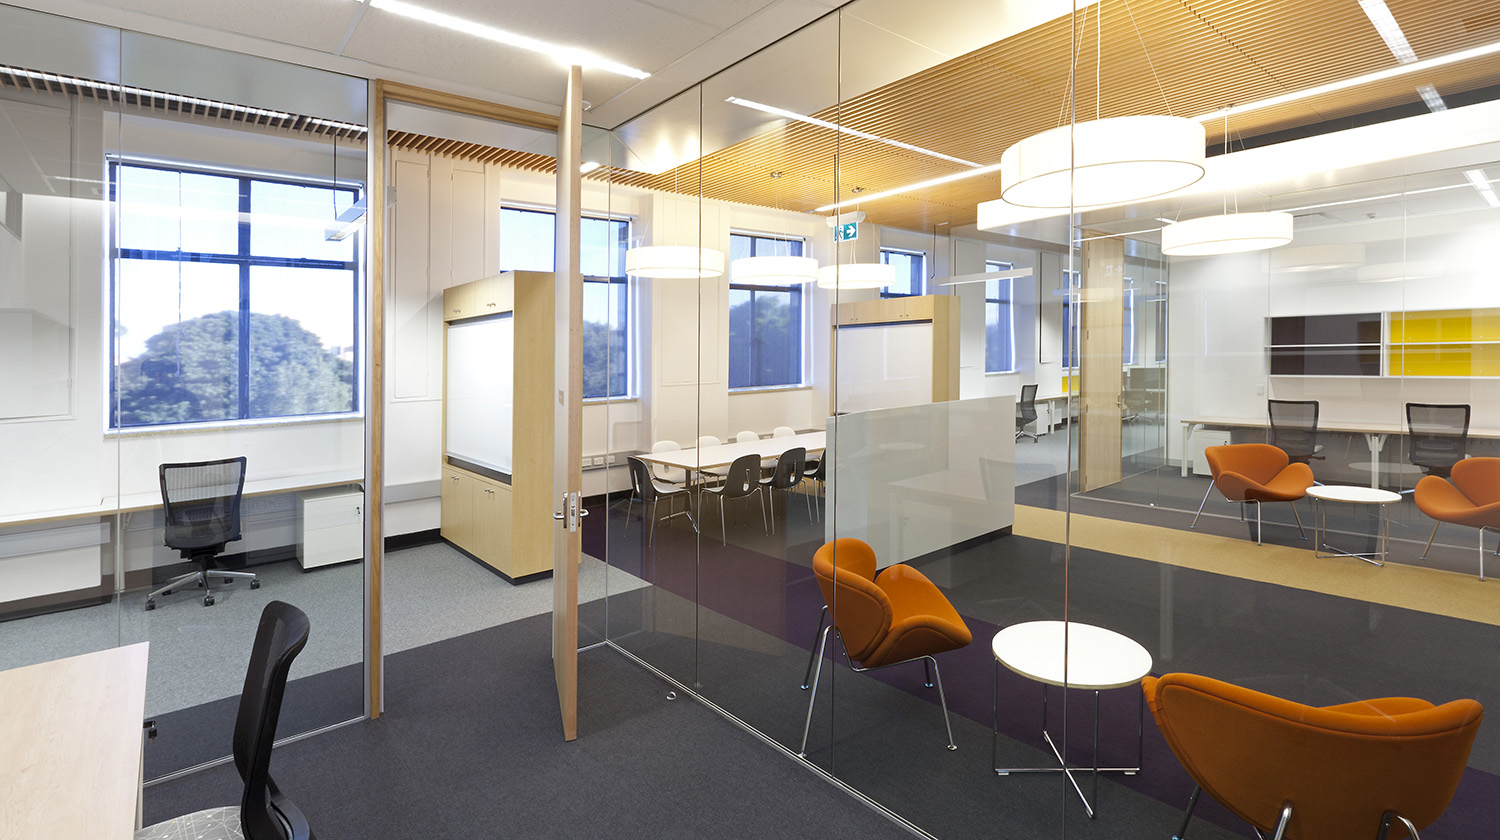 UNSW Astrophysics Work Environment – Office and Meeting Room – Gardner Wetherill GW 2